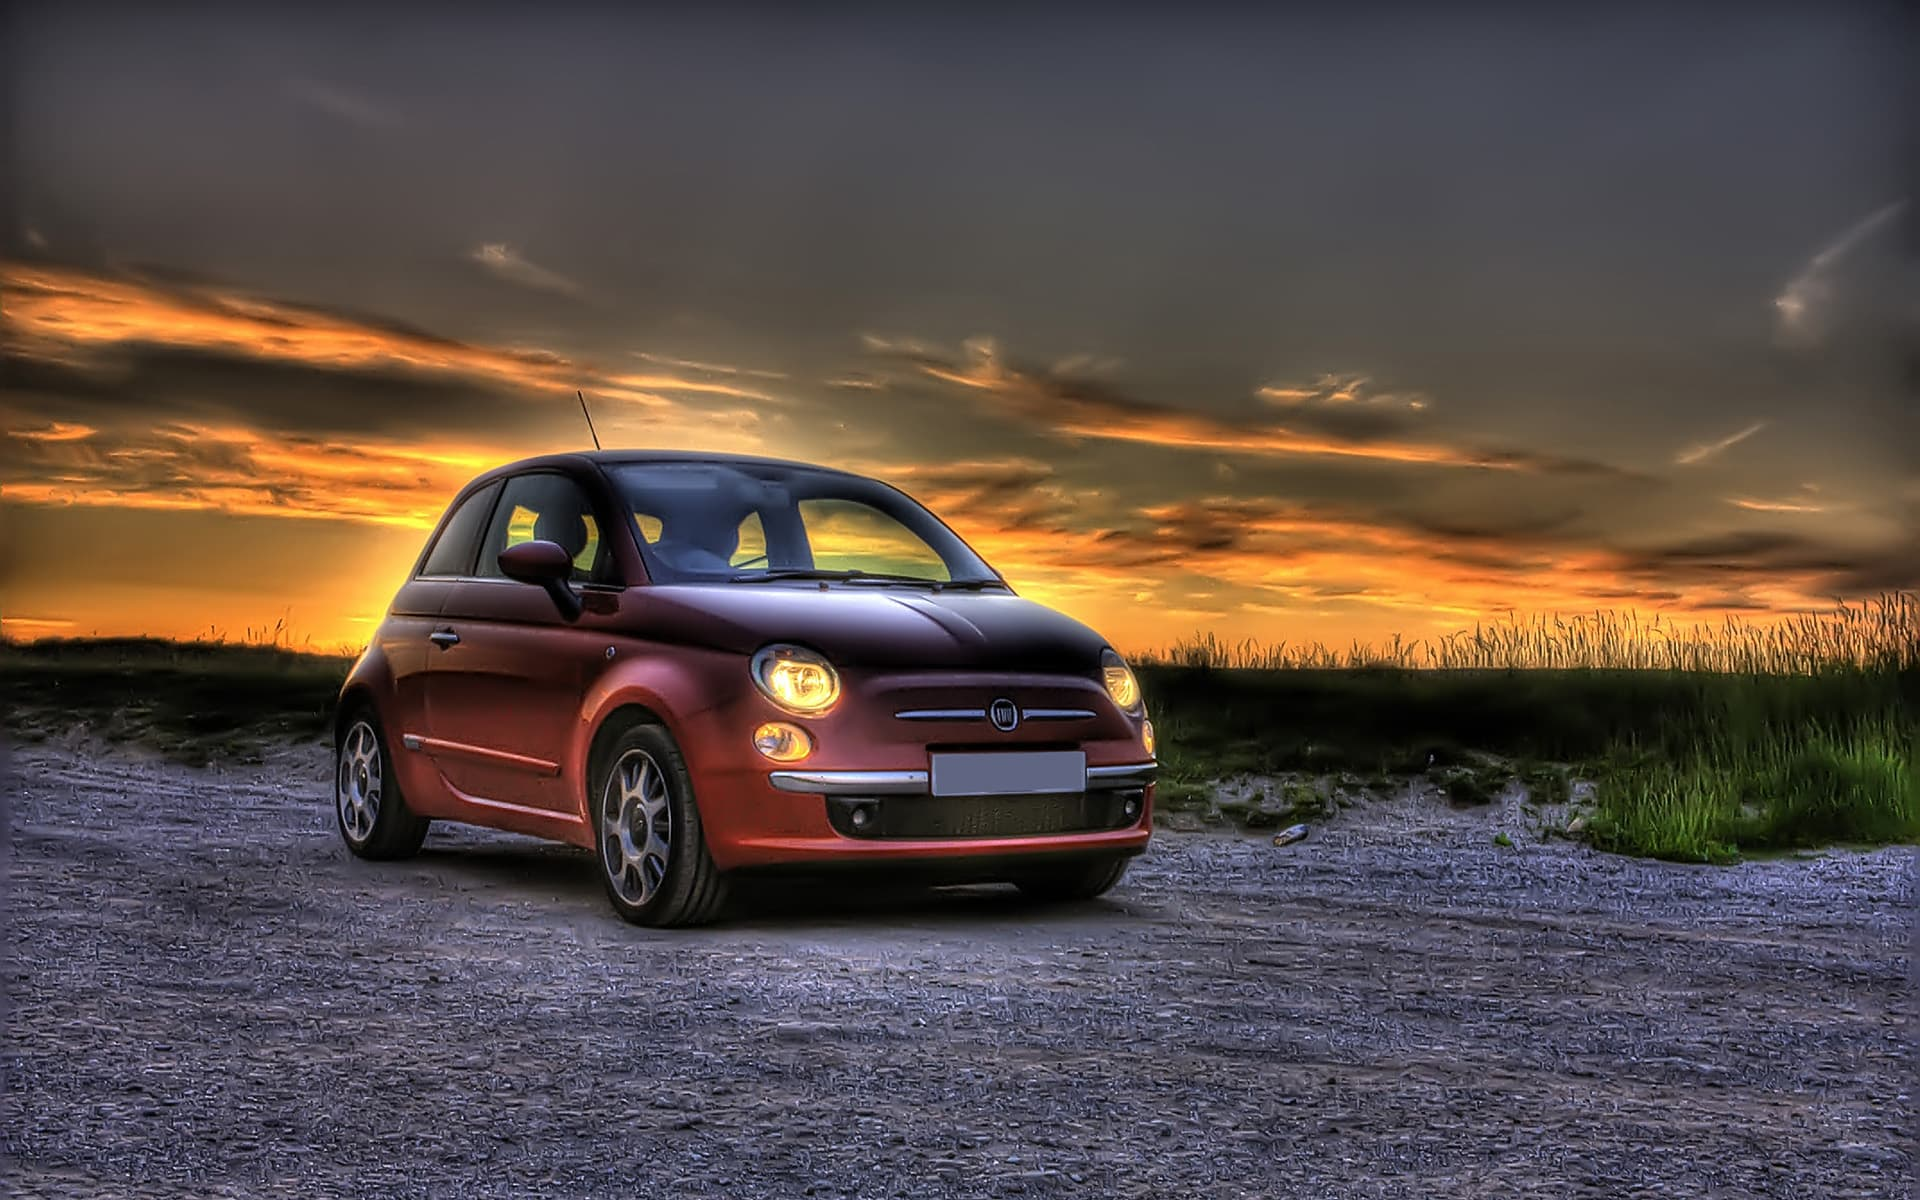 Free Wallpapers Of Cars And Bikes For Desktop 30 Fiat 500 Hd Wallpapers For Desktop Free Download